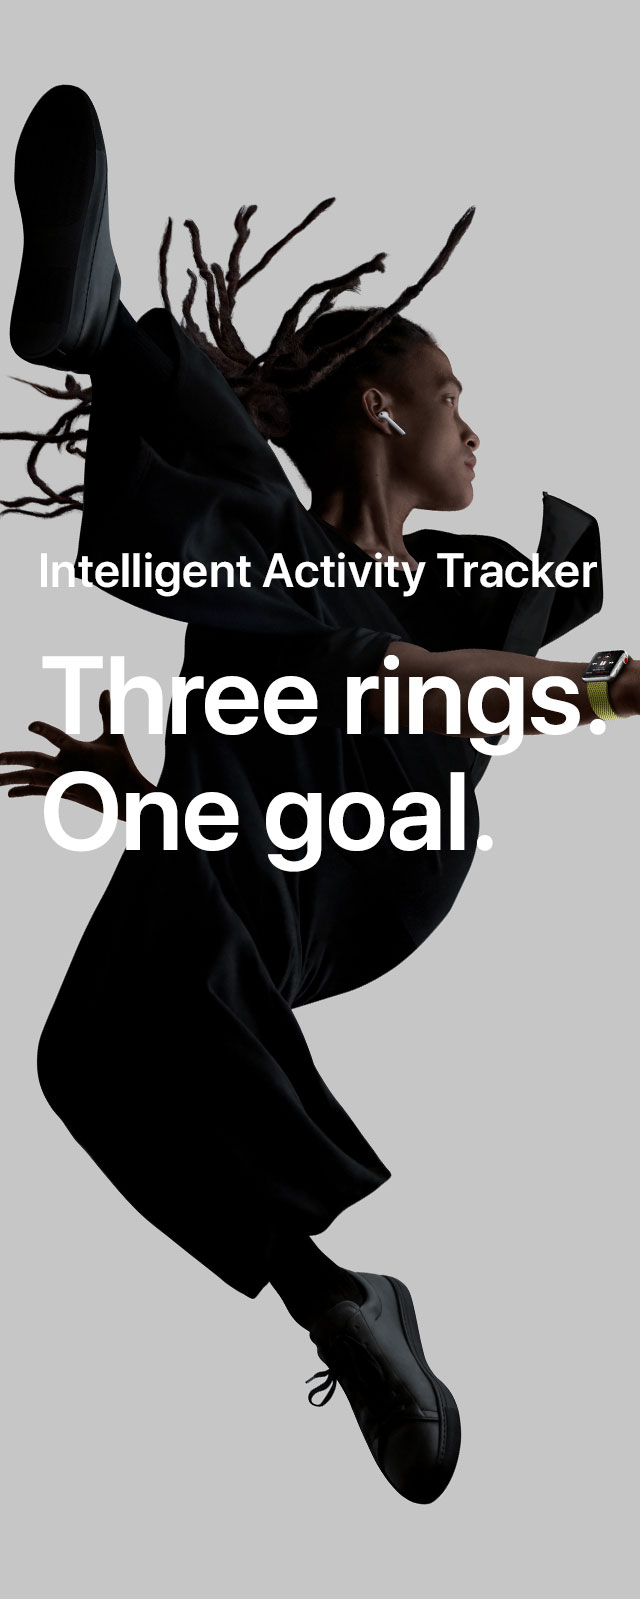 Intelligent activity tracker. Three rings. One goal.